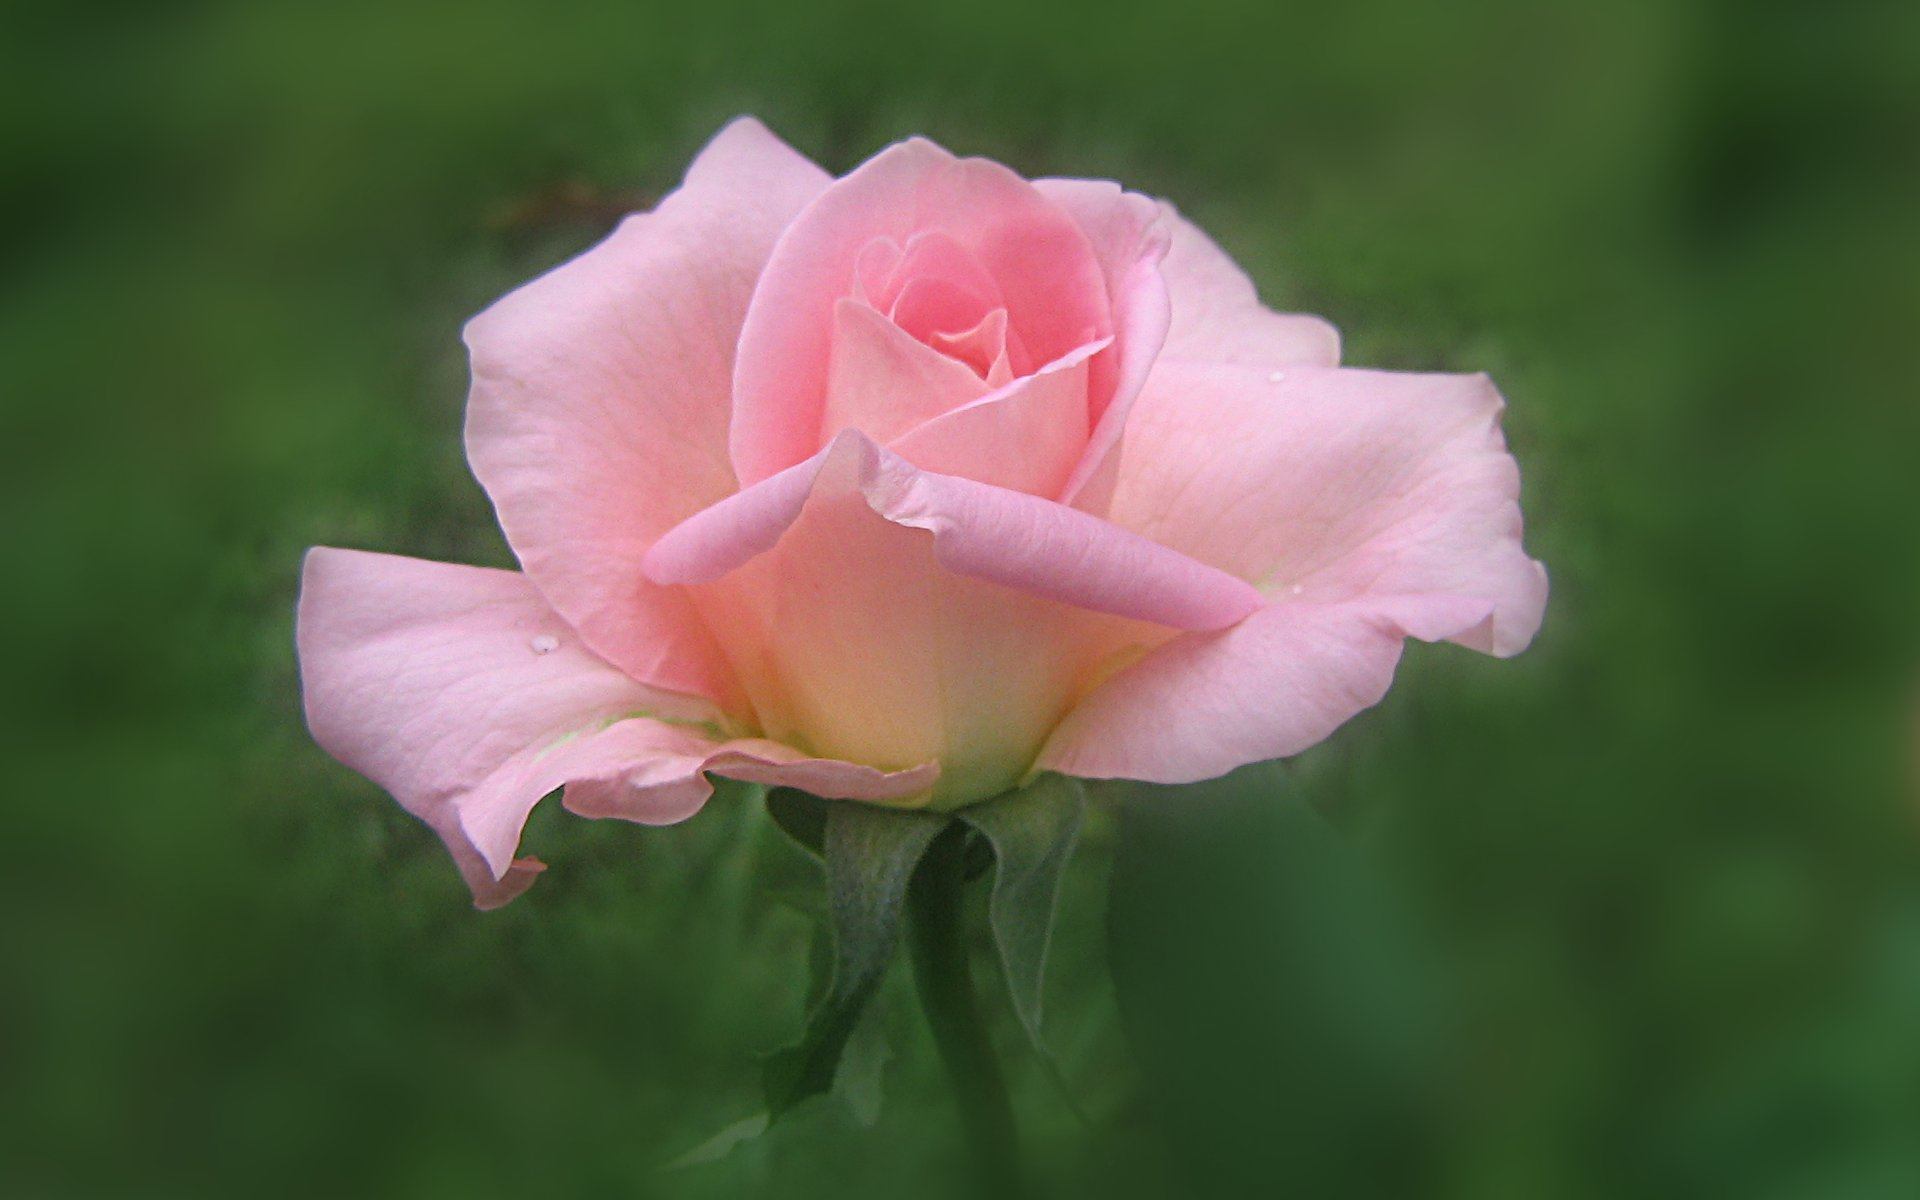 wallpapers widescreen pink roses - photo #13